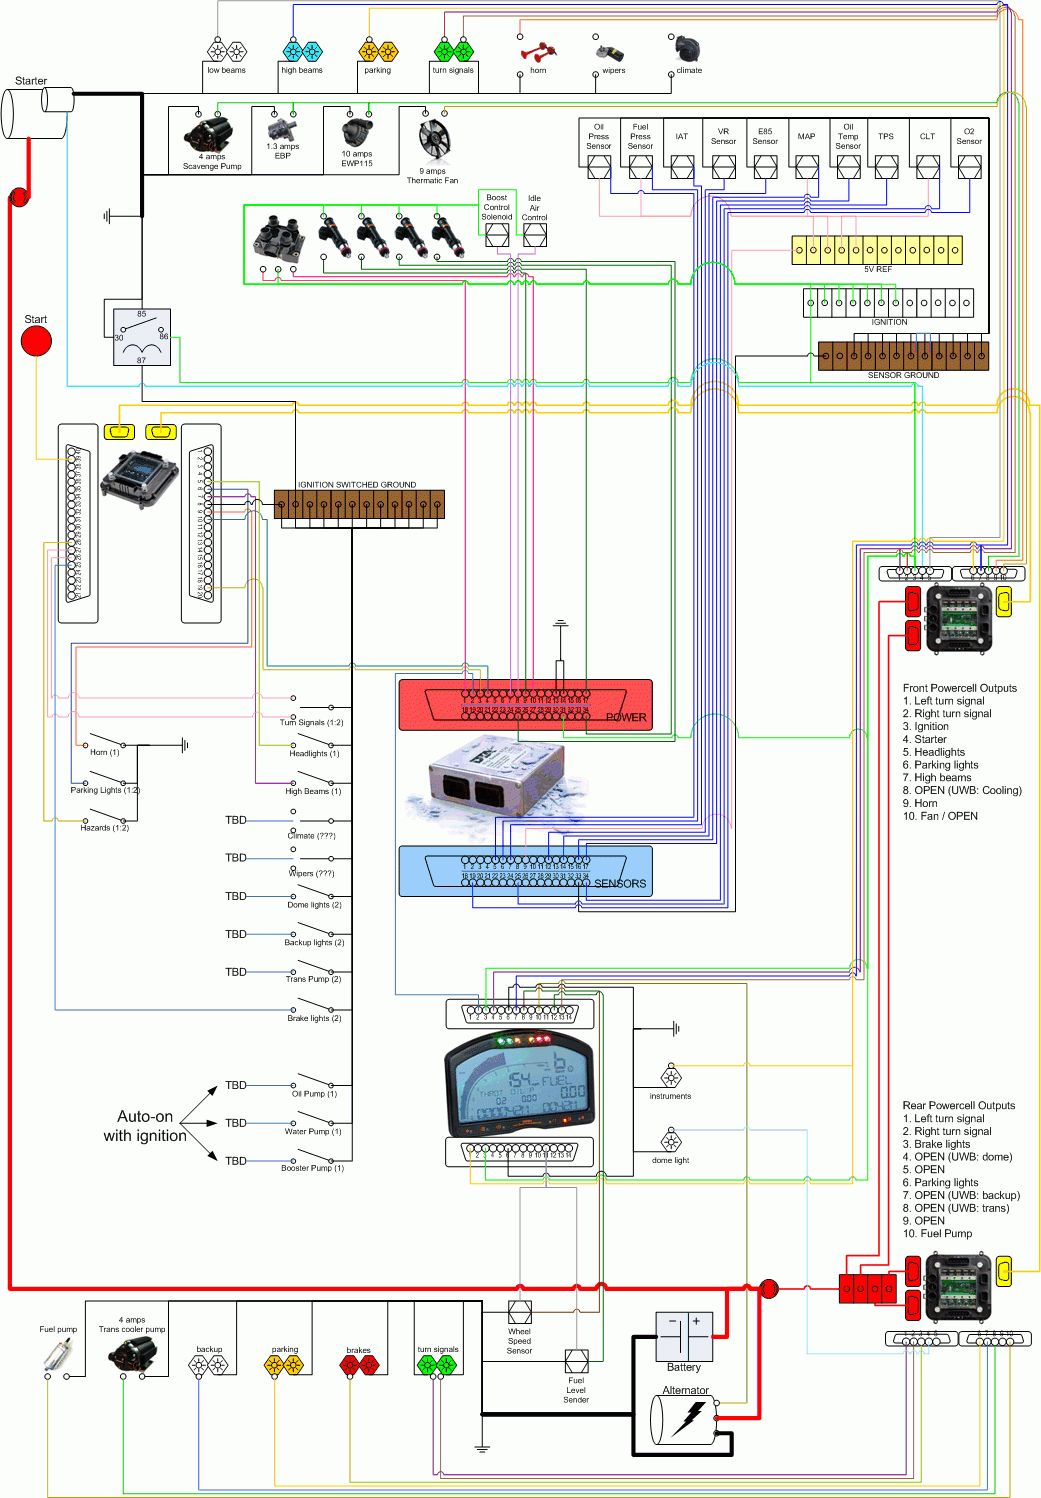 small resolution of race car wiring schematic wiring diagram pagedrag race car wiring systems wiring diagramrace car wiring schematic